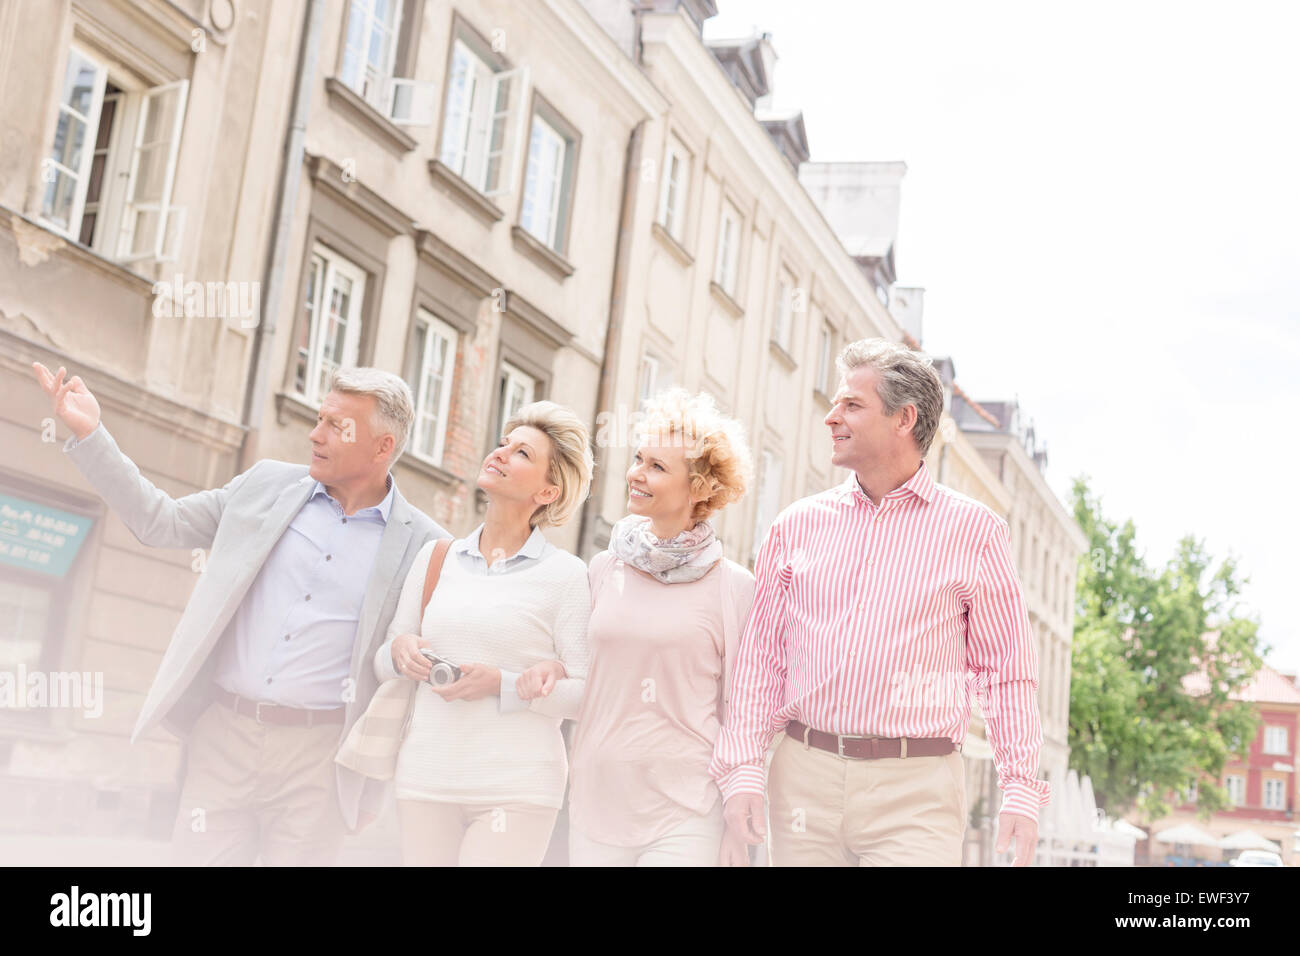 Middle-aged man showing something to friends while walking in city - Stock Image